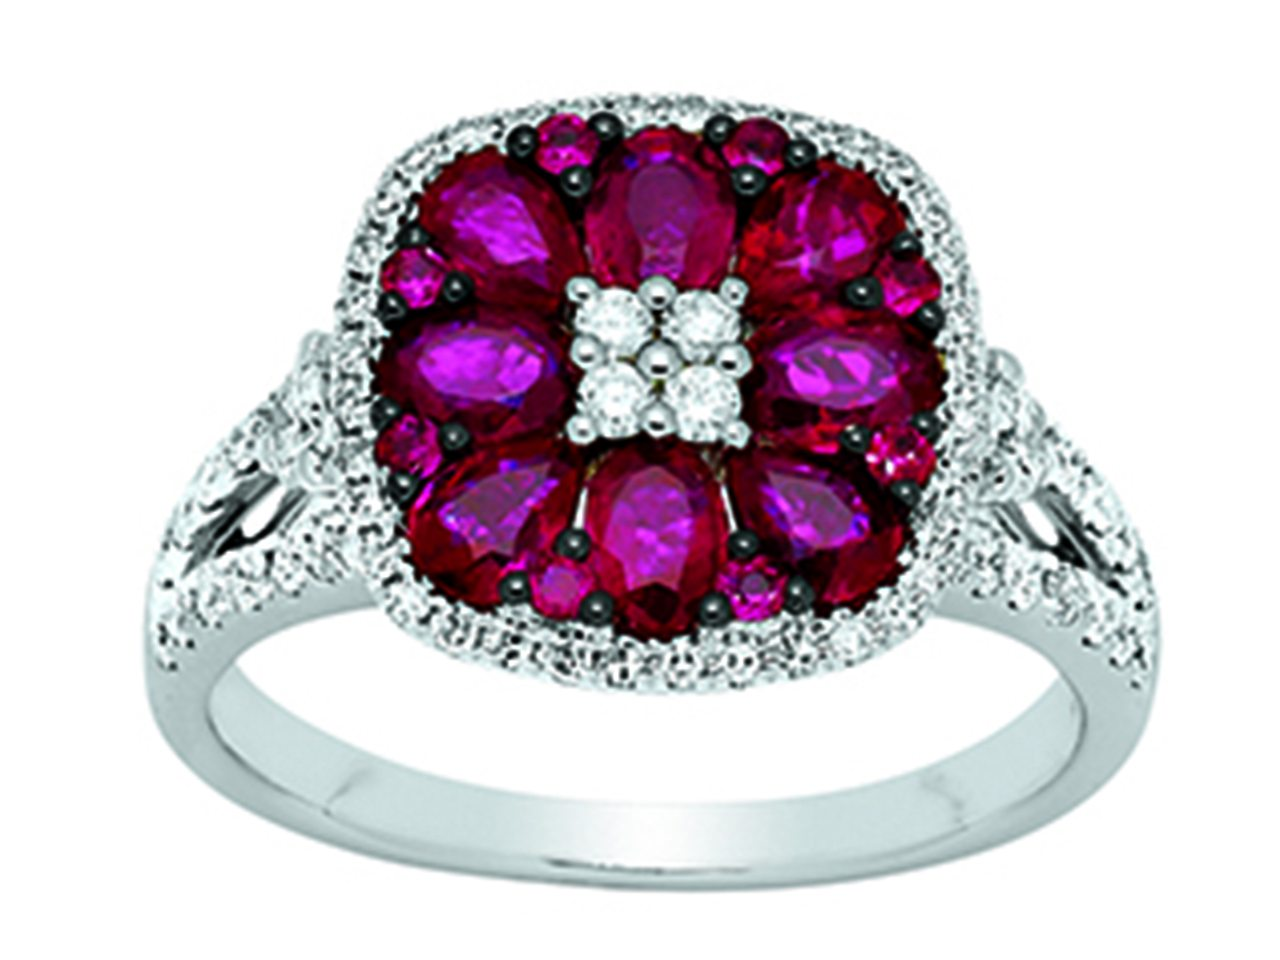 Bague Or girs 18k, rubis 1,60ct, diamants 0,63ct, doigt 56